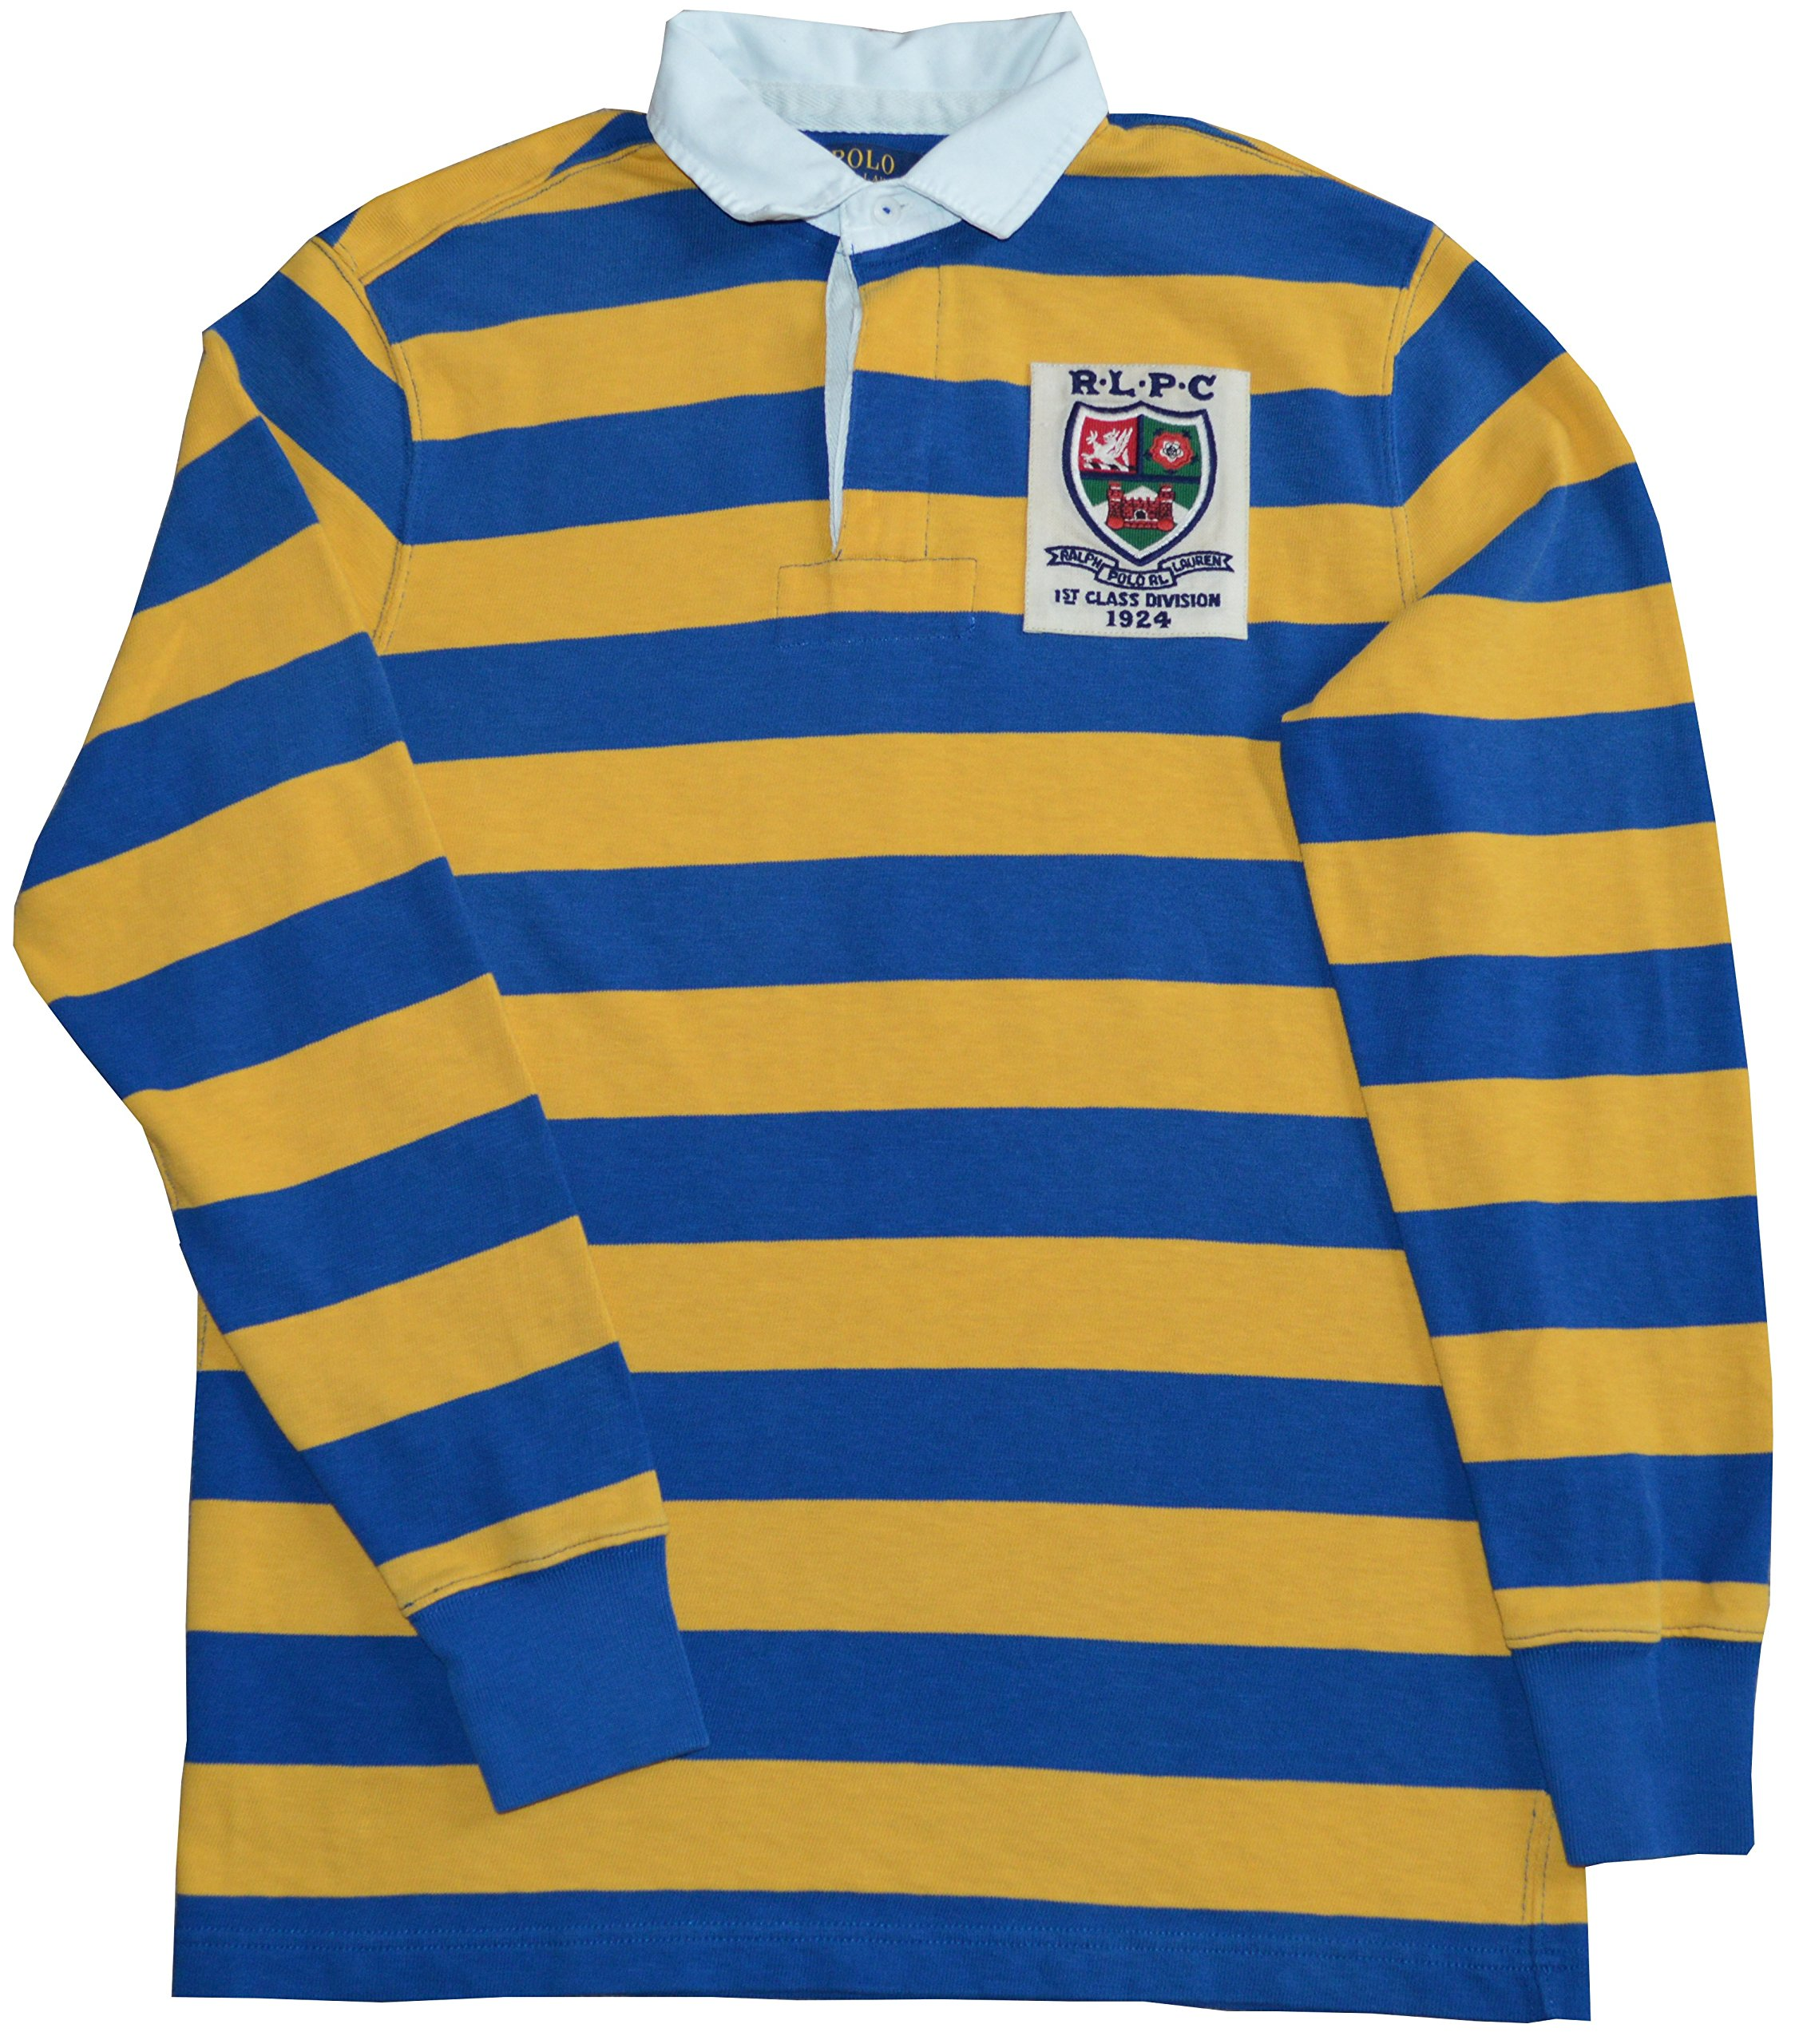 Polo Ralph Lauren Men's Custom-Fit ''RLPC''-Crest Striped Rugby Shirt-NY-M